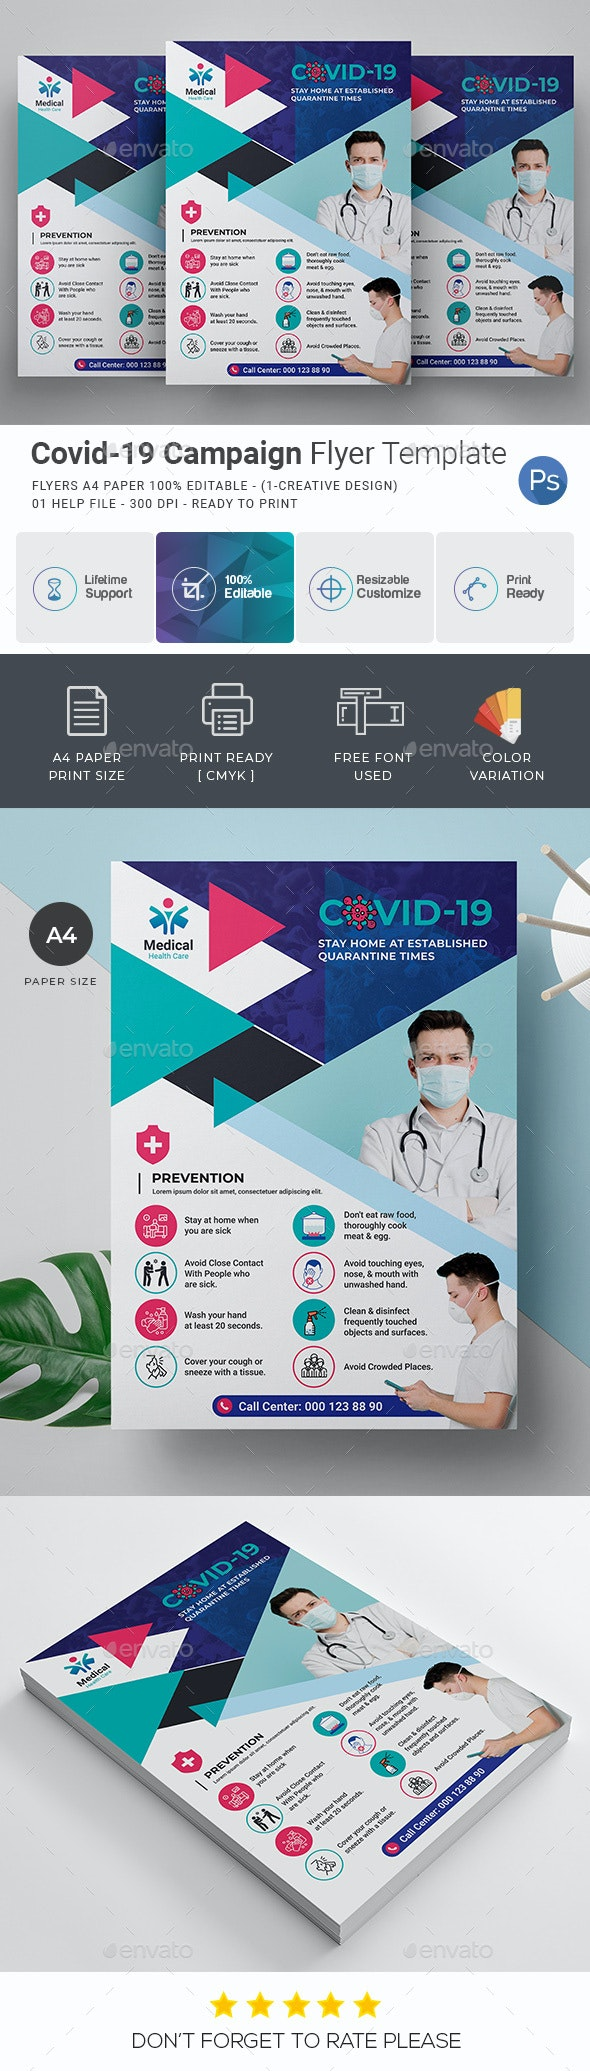 Covid-19 Campaign Flyer Template - Corporate Flyers